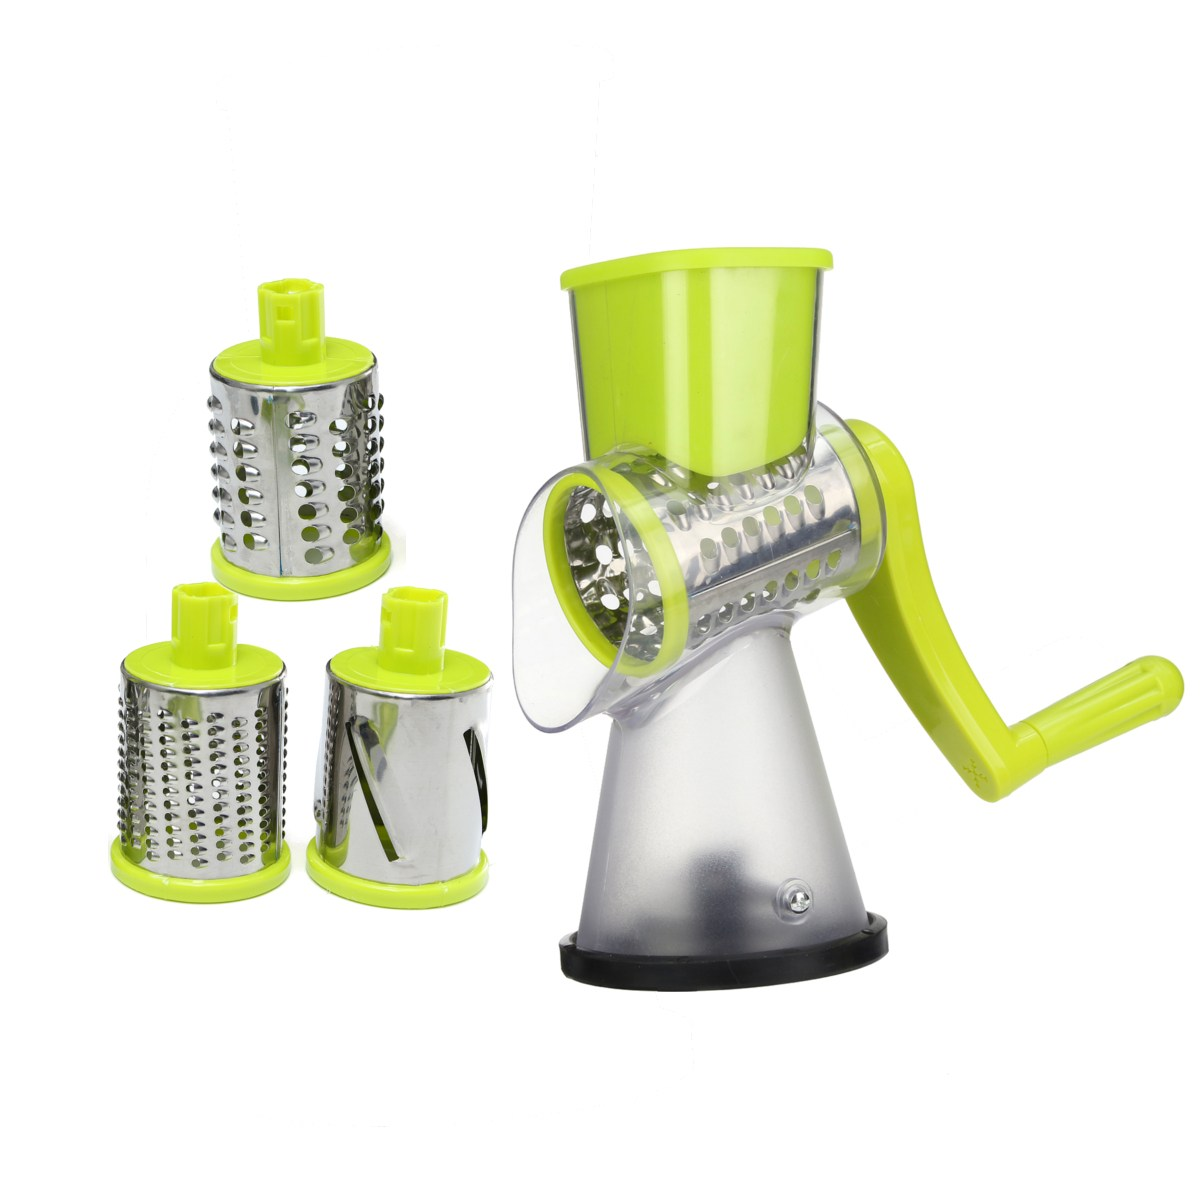 Manual Roller Vegetable Slicer Cutter Potato Chopper Carrot Grater Detachable 3 Stainless Steel Blade Non-Slip Base Meat Grinder no 5 small household manual meat grinder aluminium alloy body with stainless steel blade